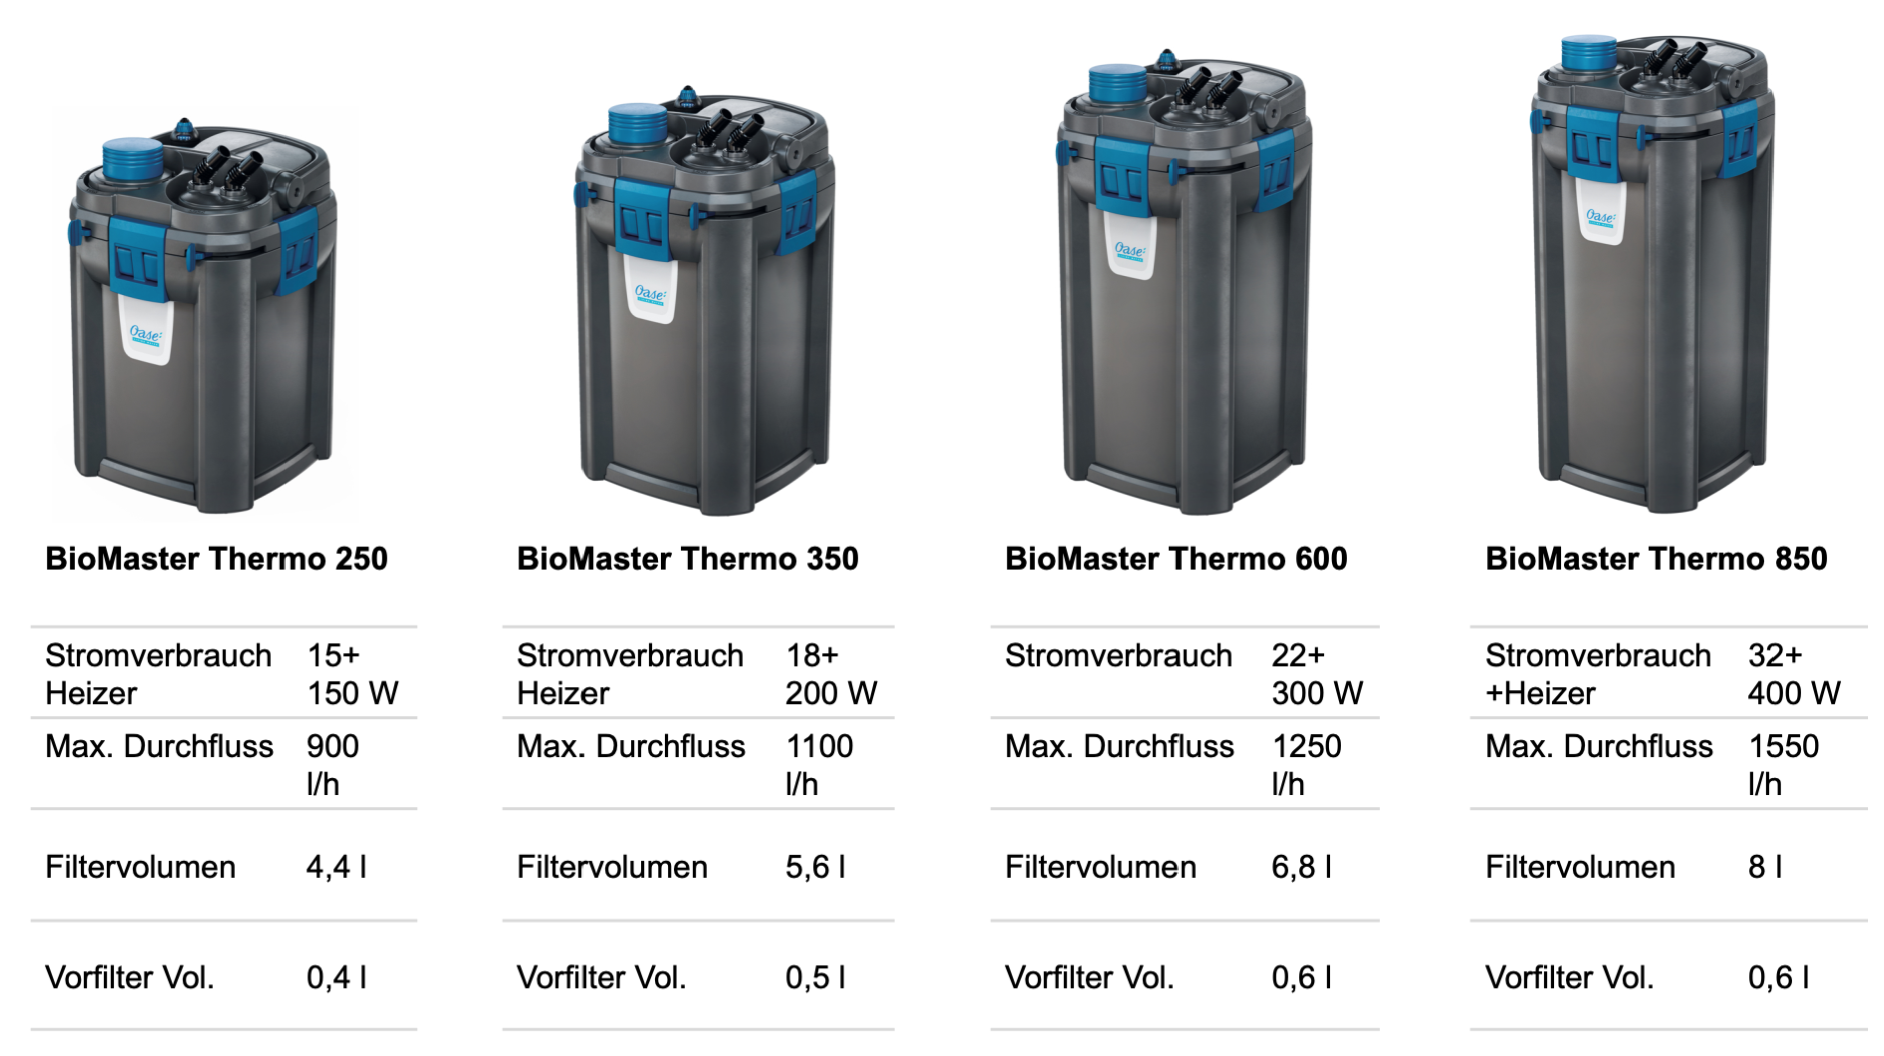 BioMaster Thermo Datenblatt